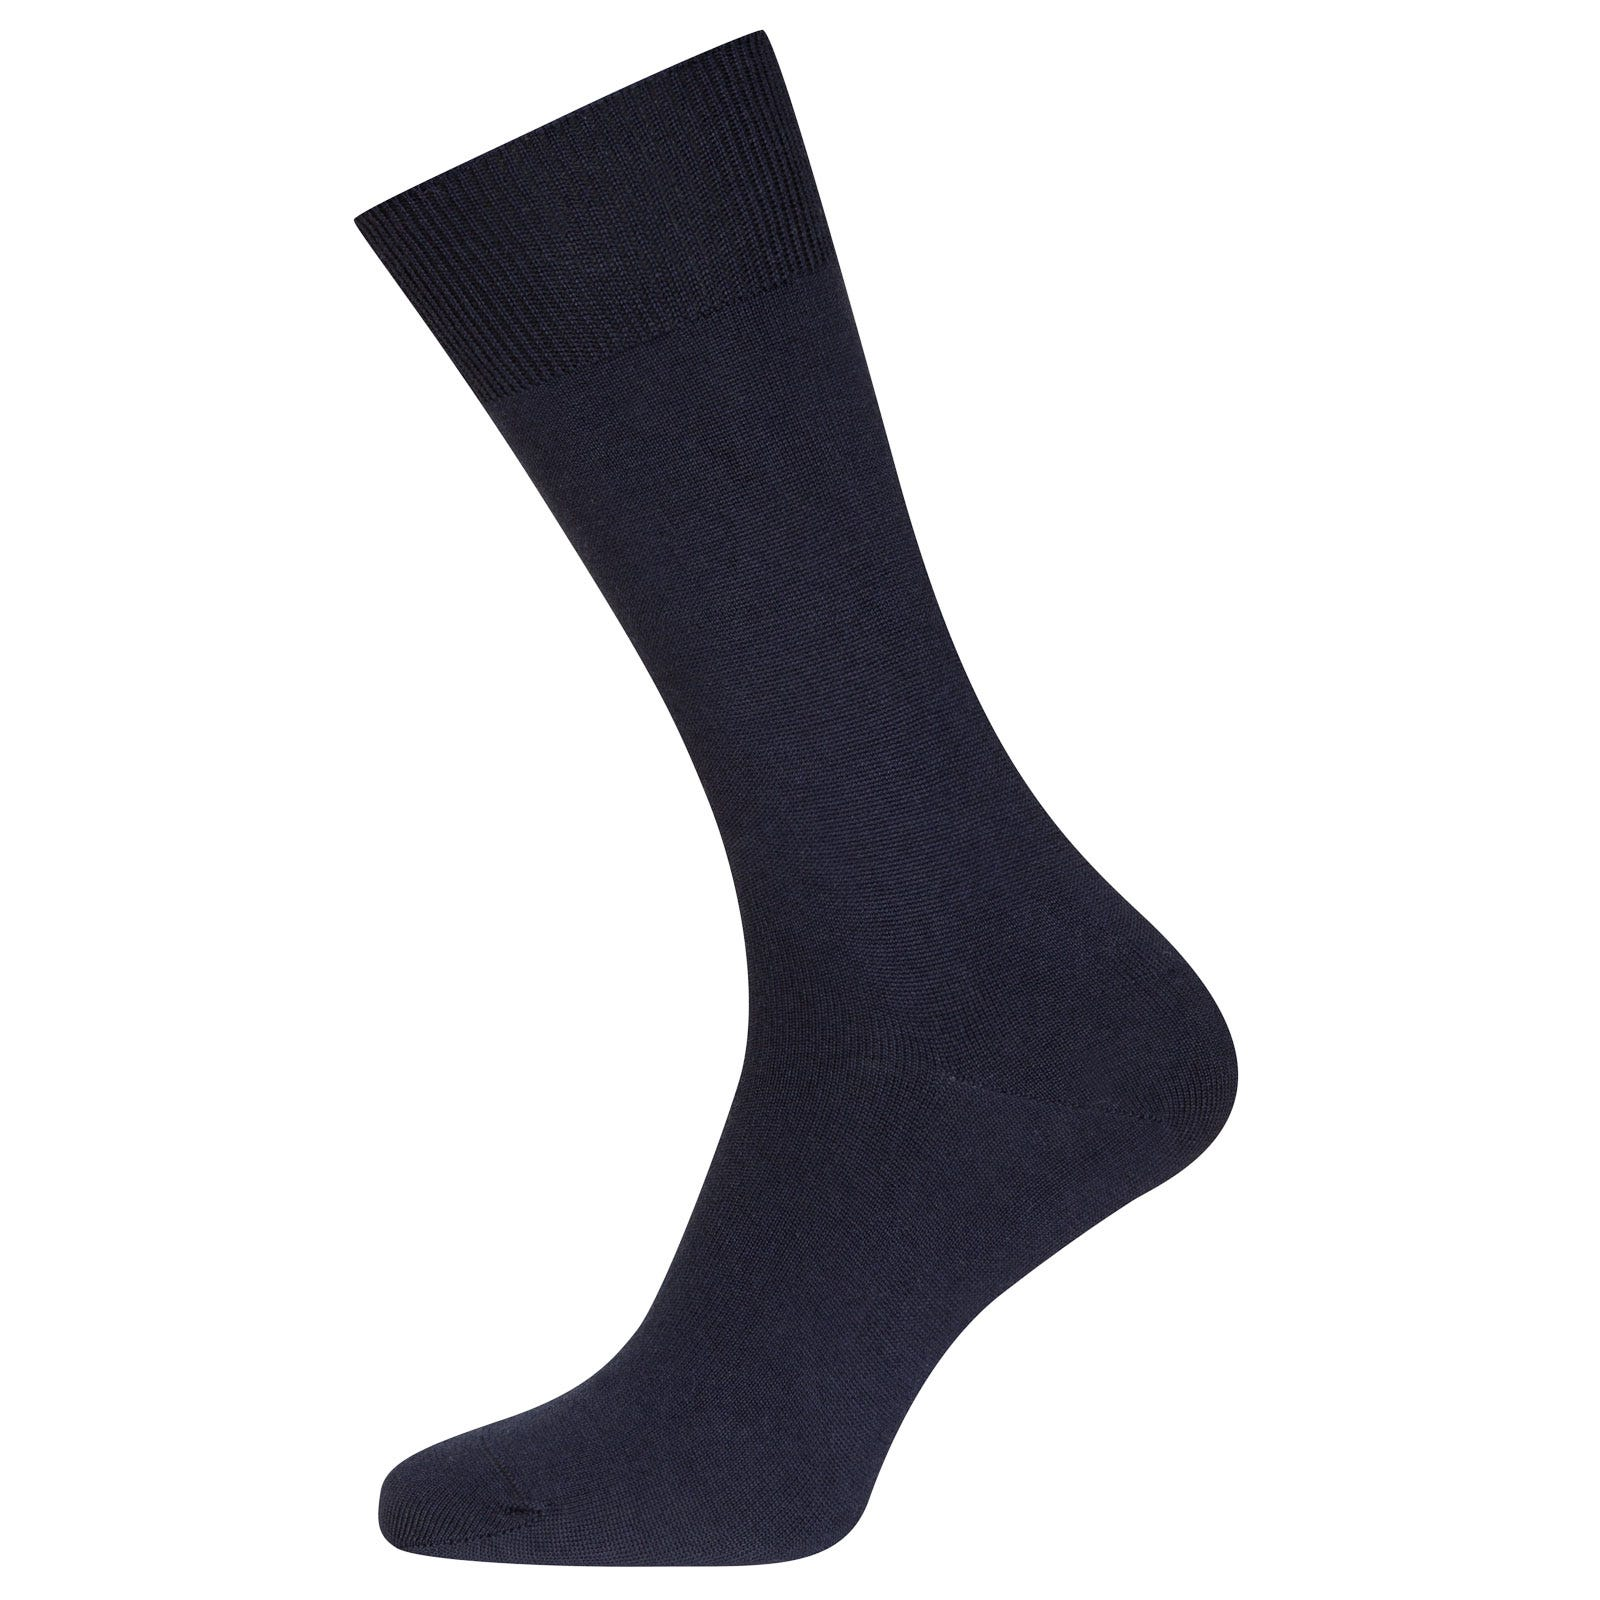 John Smedley eros Sea Island Cotton and Cashmere Socks in Navy-M/L